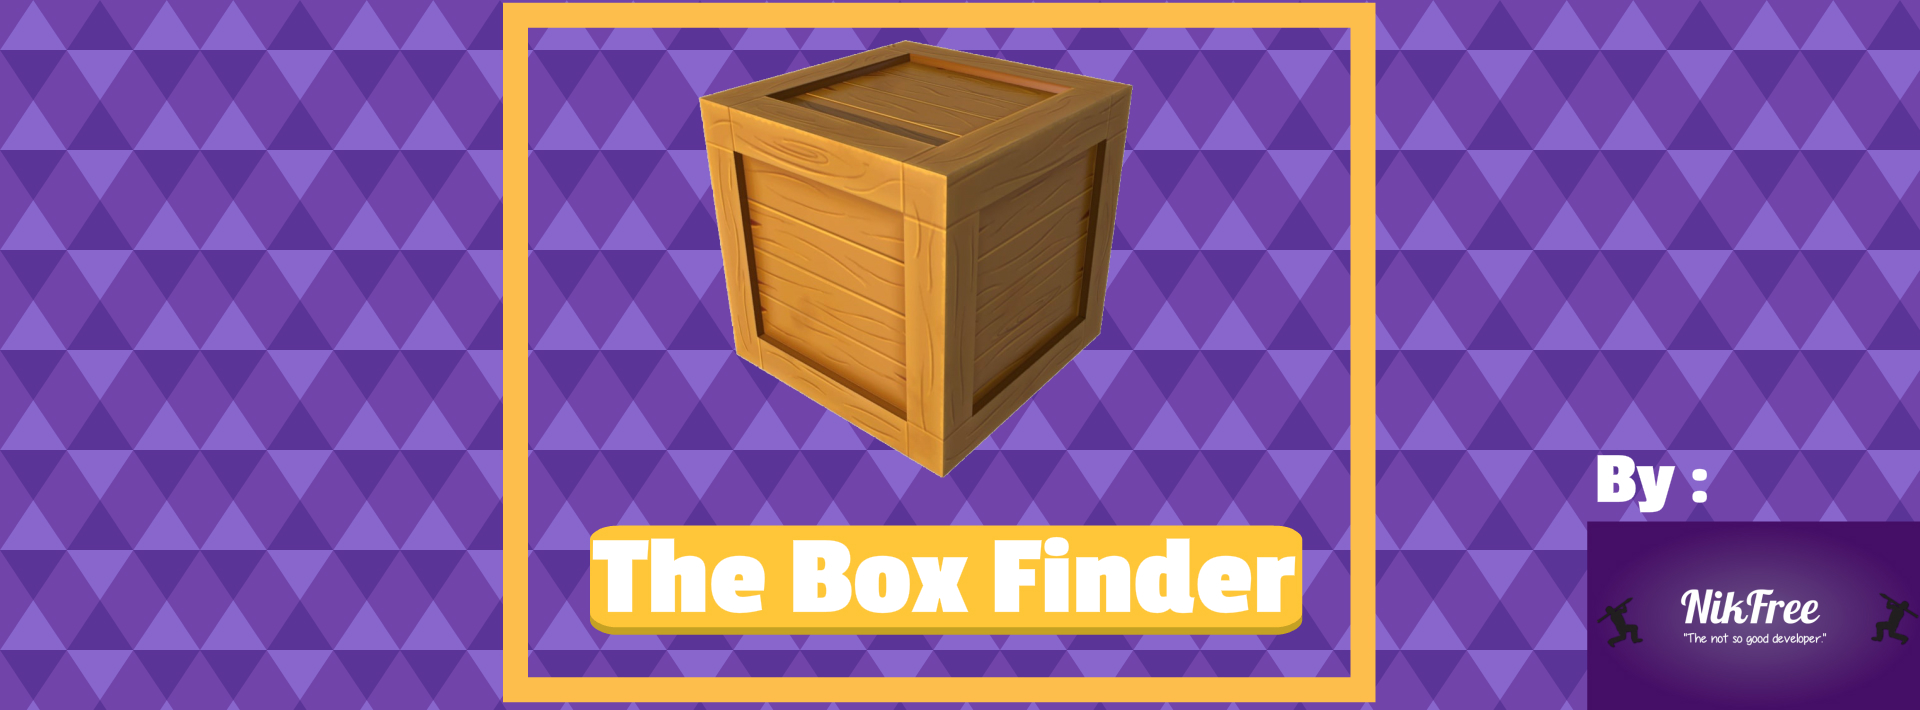 The Box Finder (TBF)